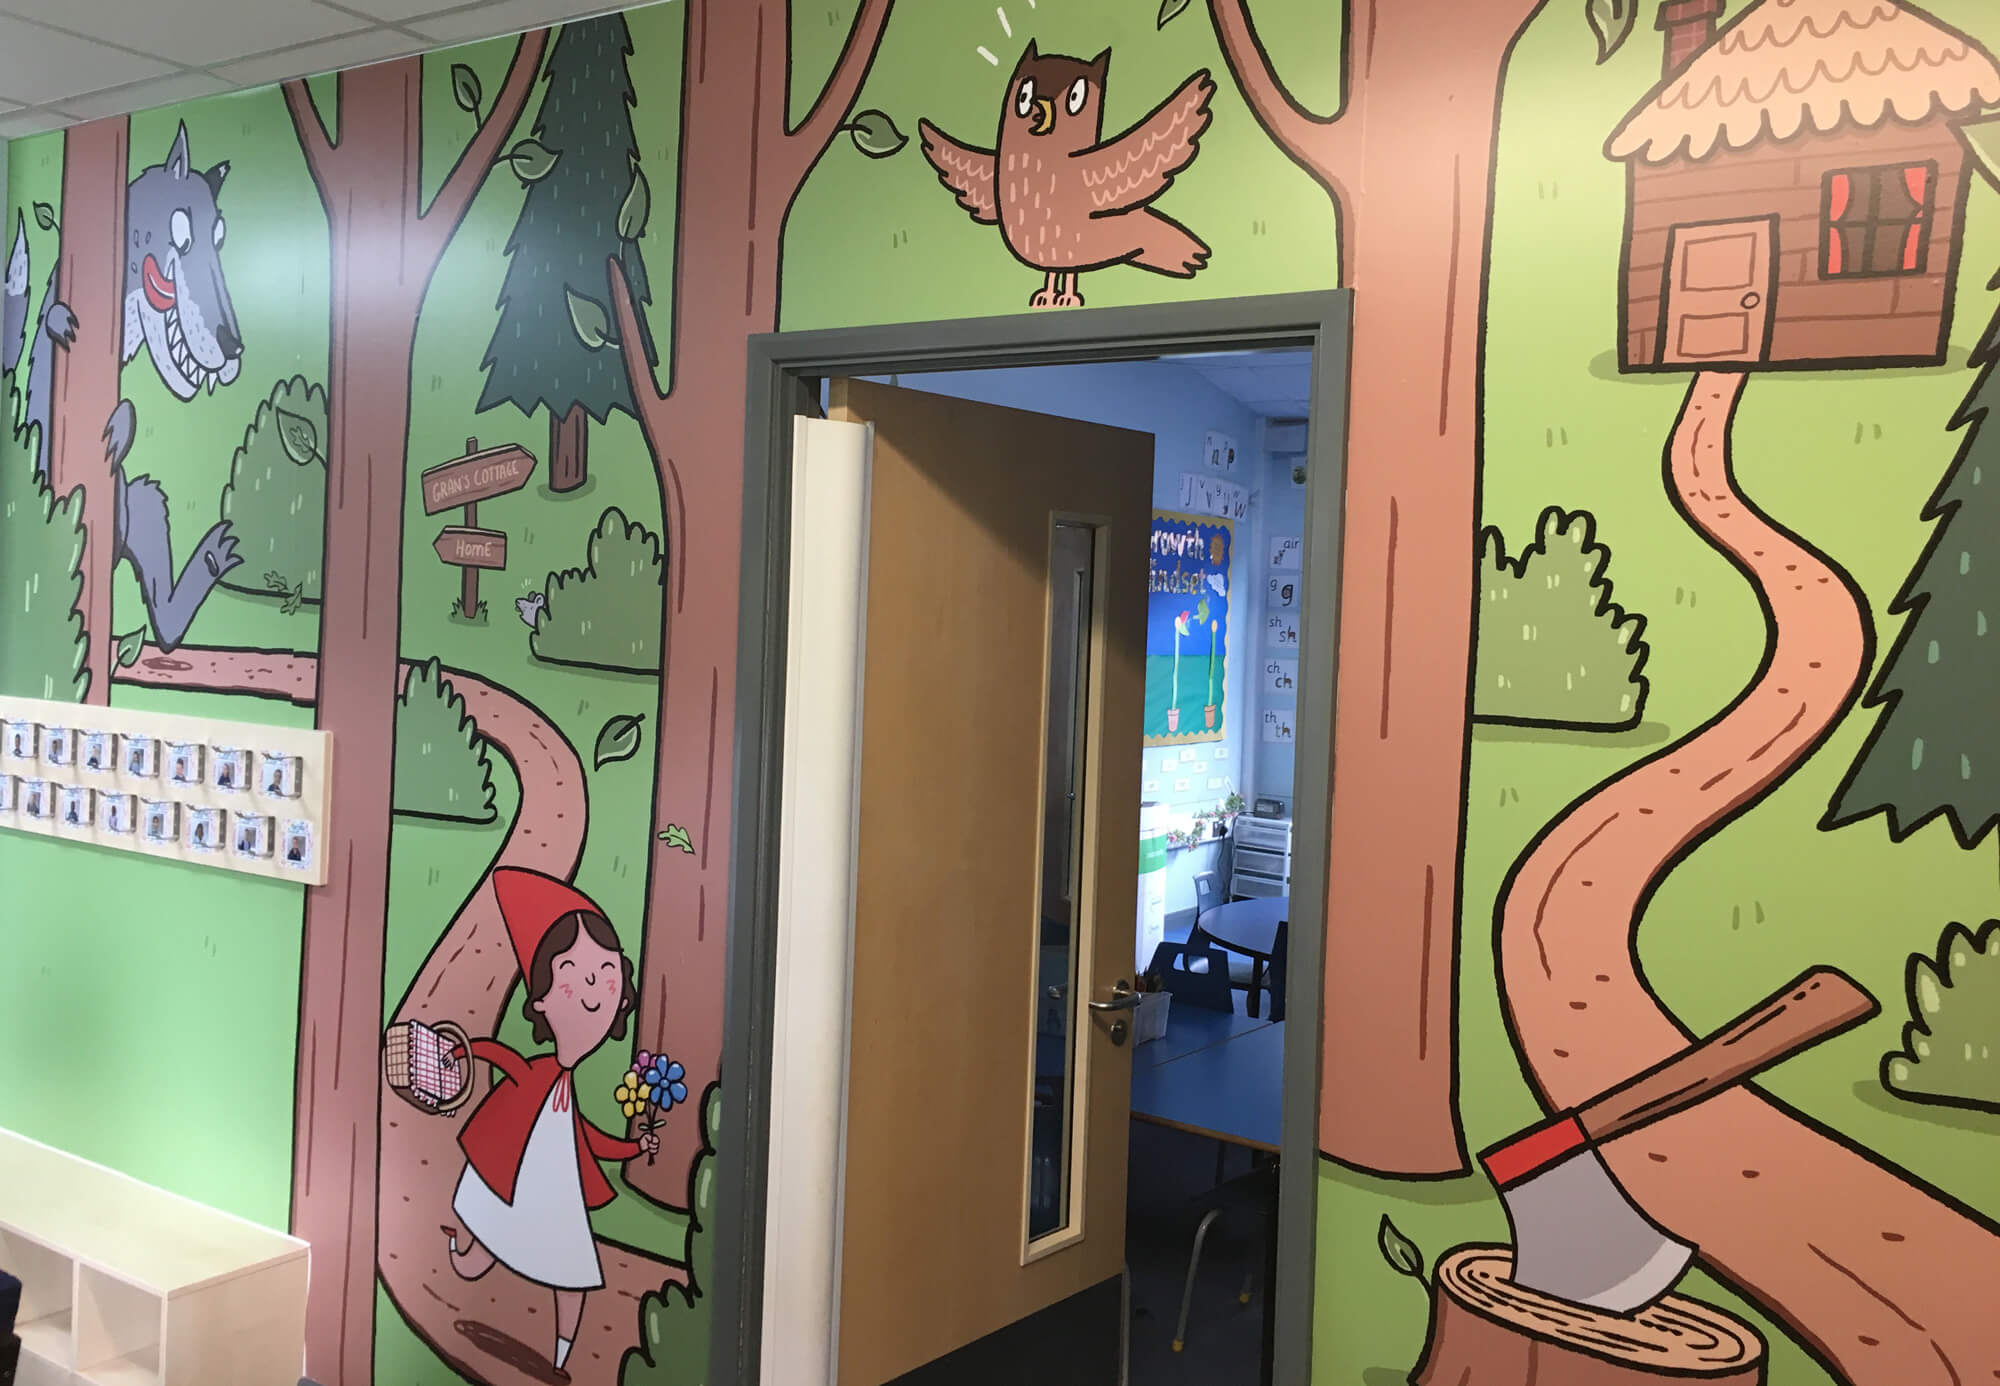 sacred_heart_primary_traditional_tales_wallgraphics_05.jpg